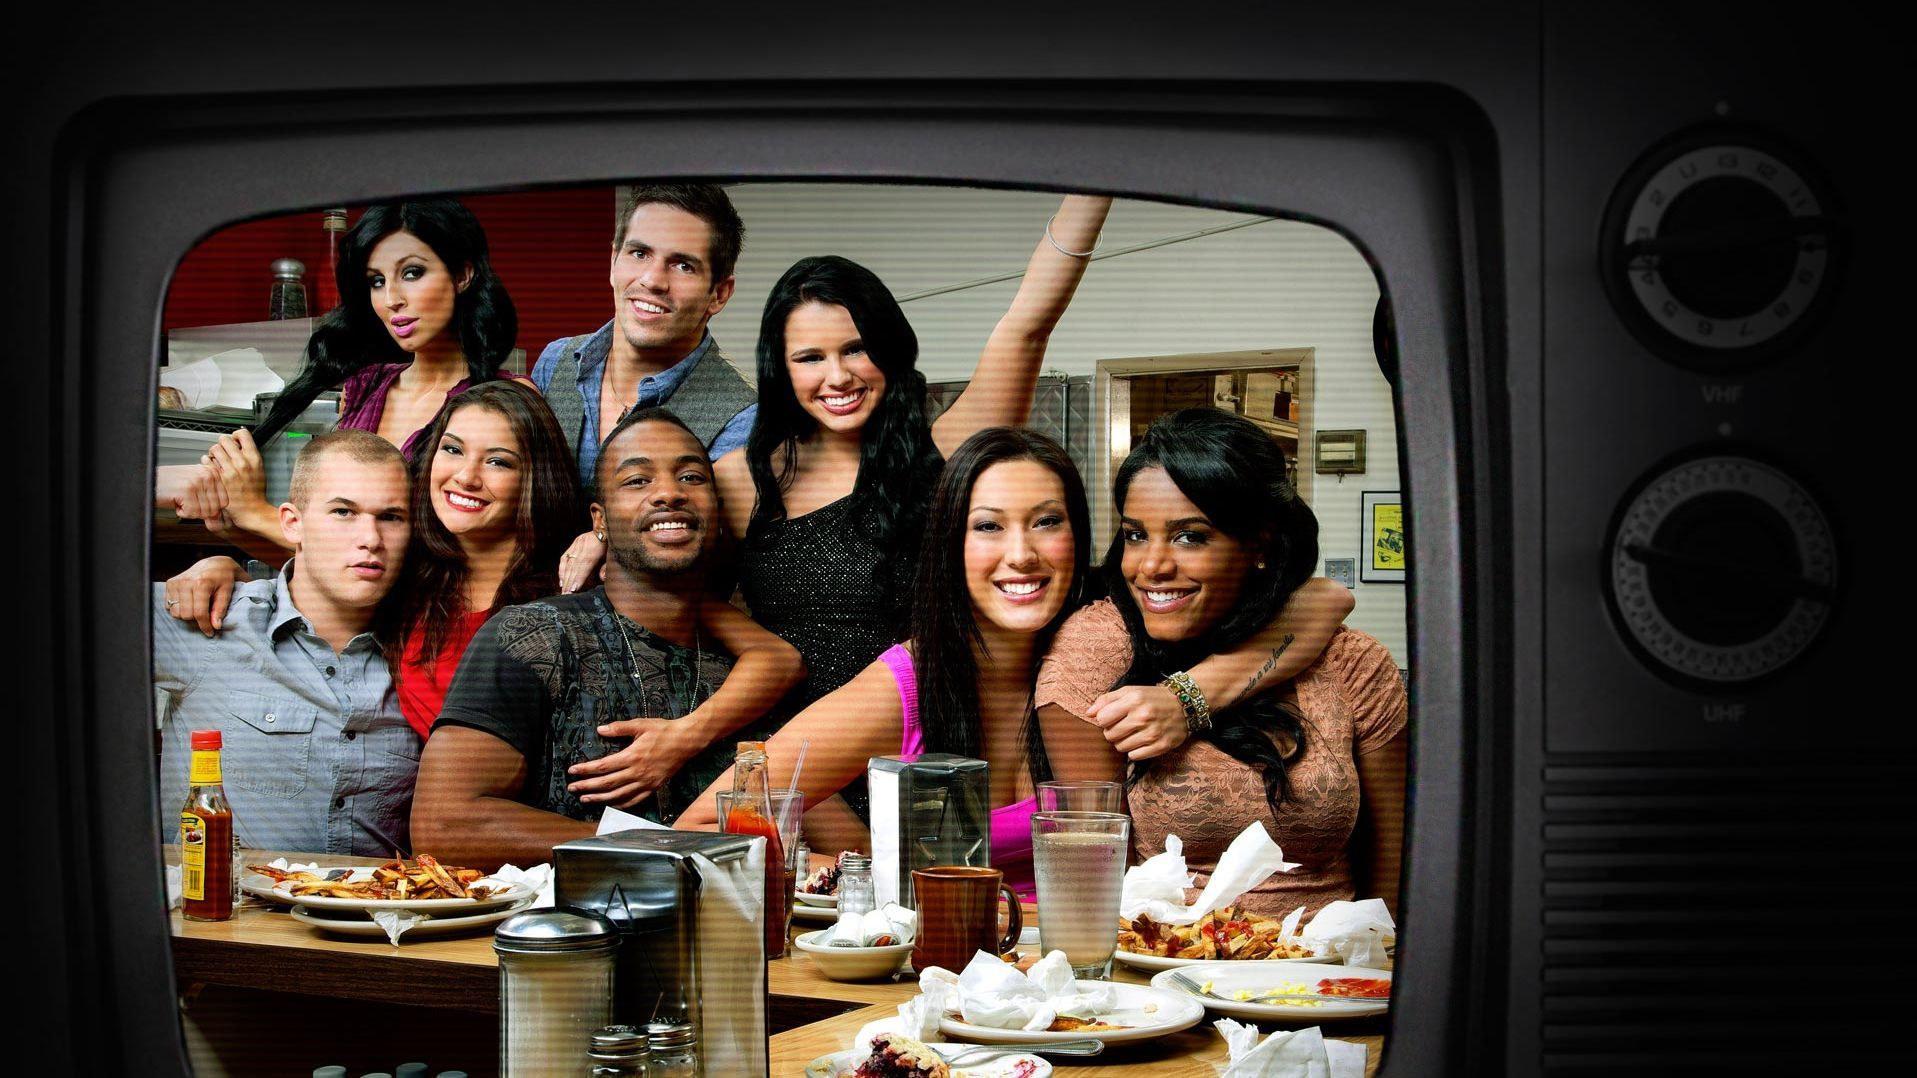 'The Real World' Reboot Launching on Facebook Watch